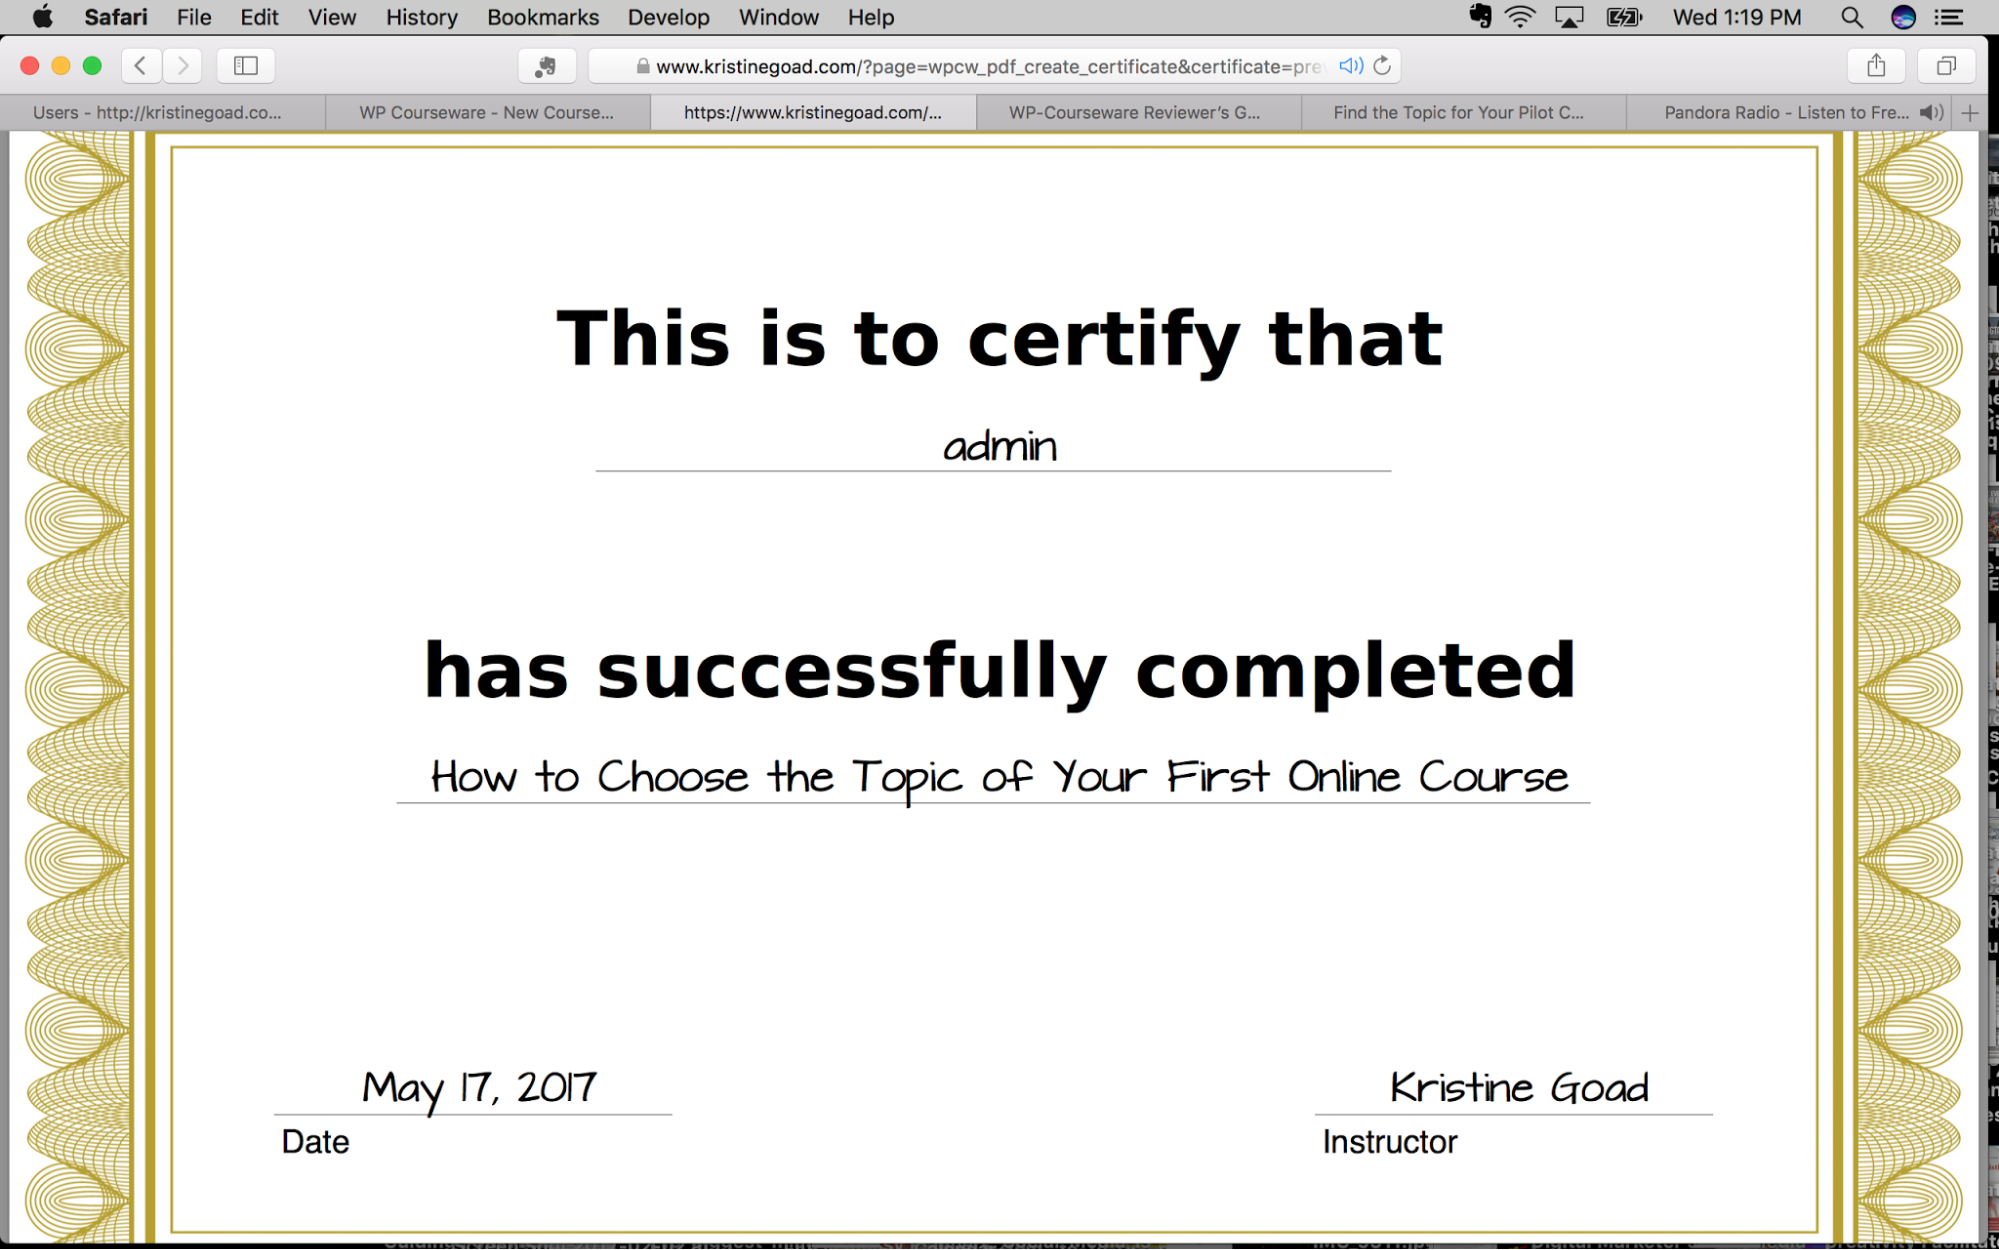 Image of WP Courseware certificate of completion